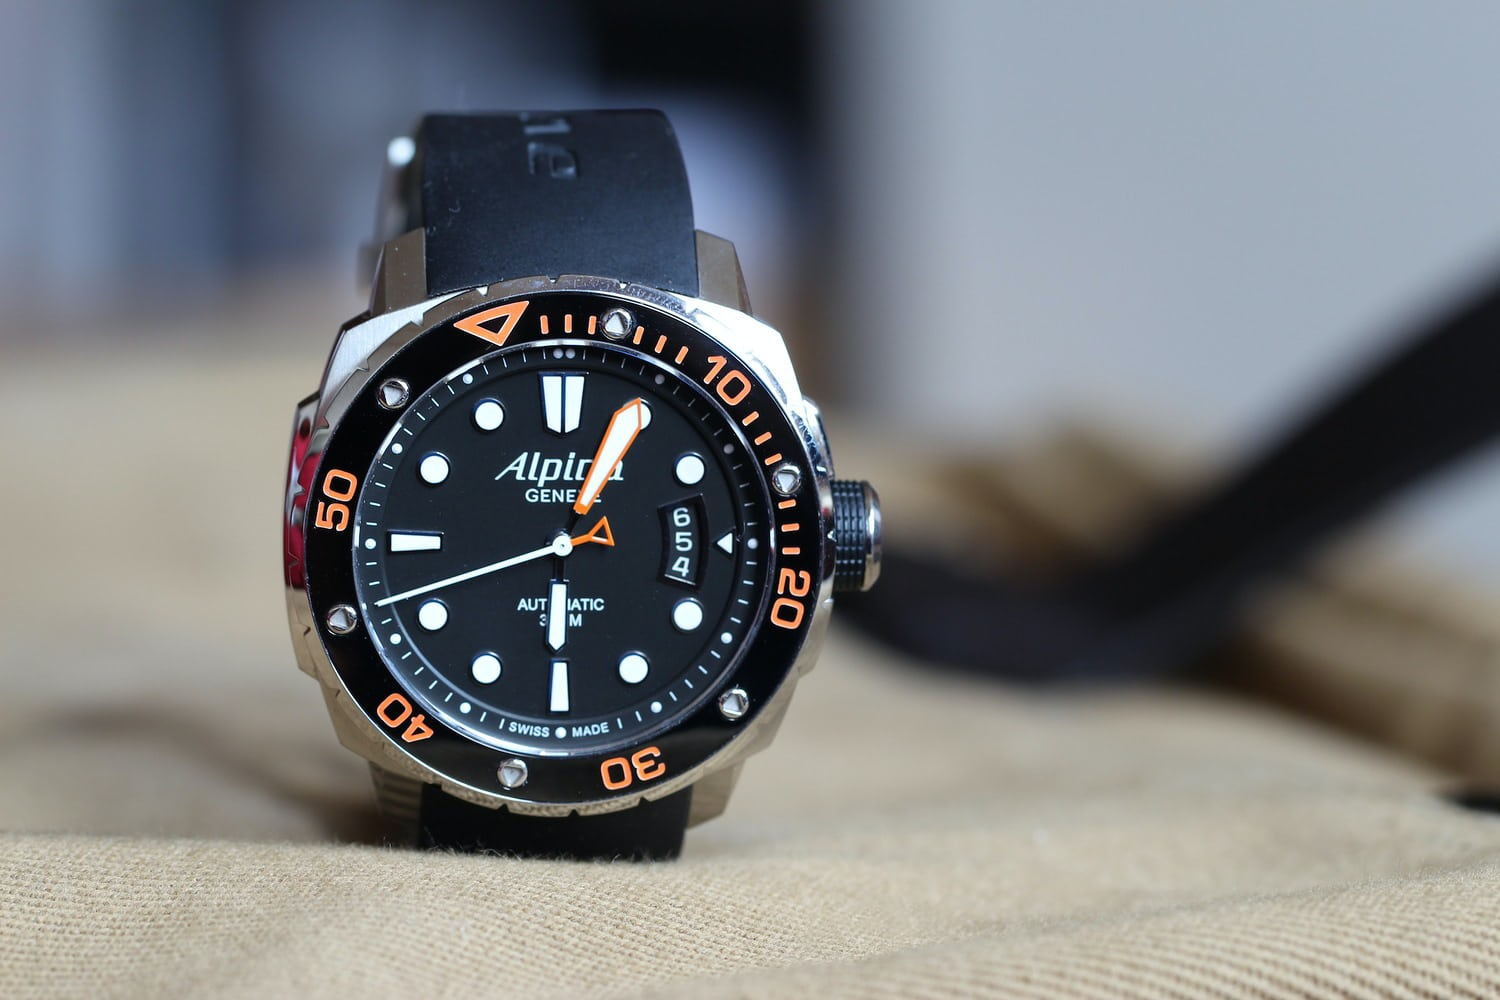 A Week On The Wrist The Alpina Extreme Diver HODINKEE - Alpina watch reviews